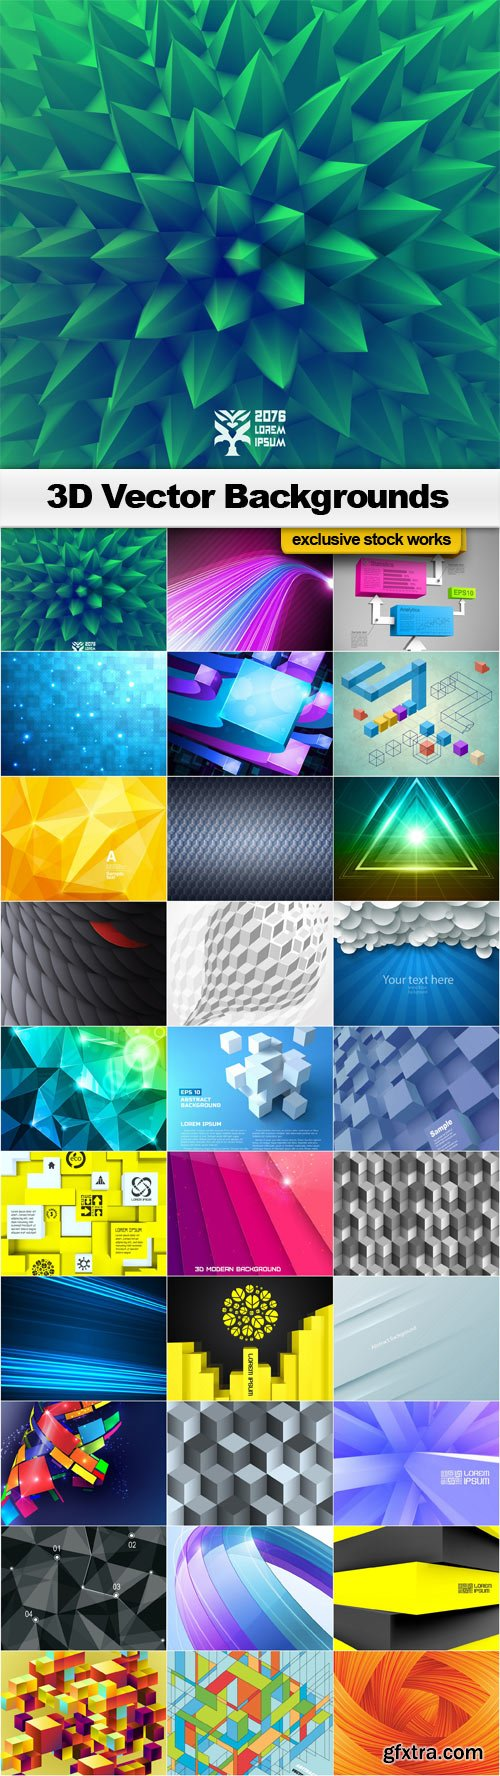 3D Vector Backgrounds - 30x EPS